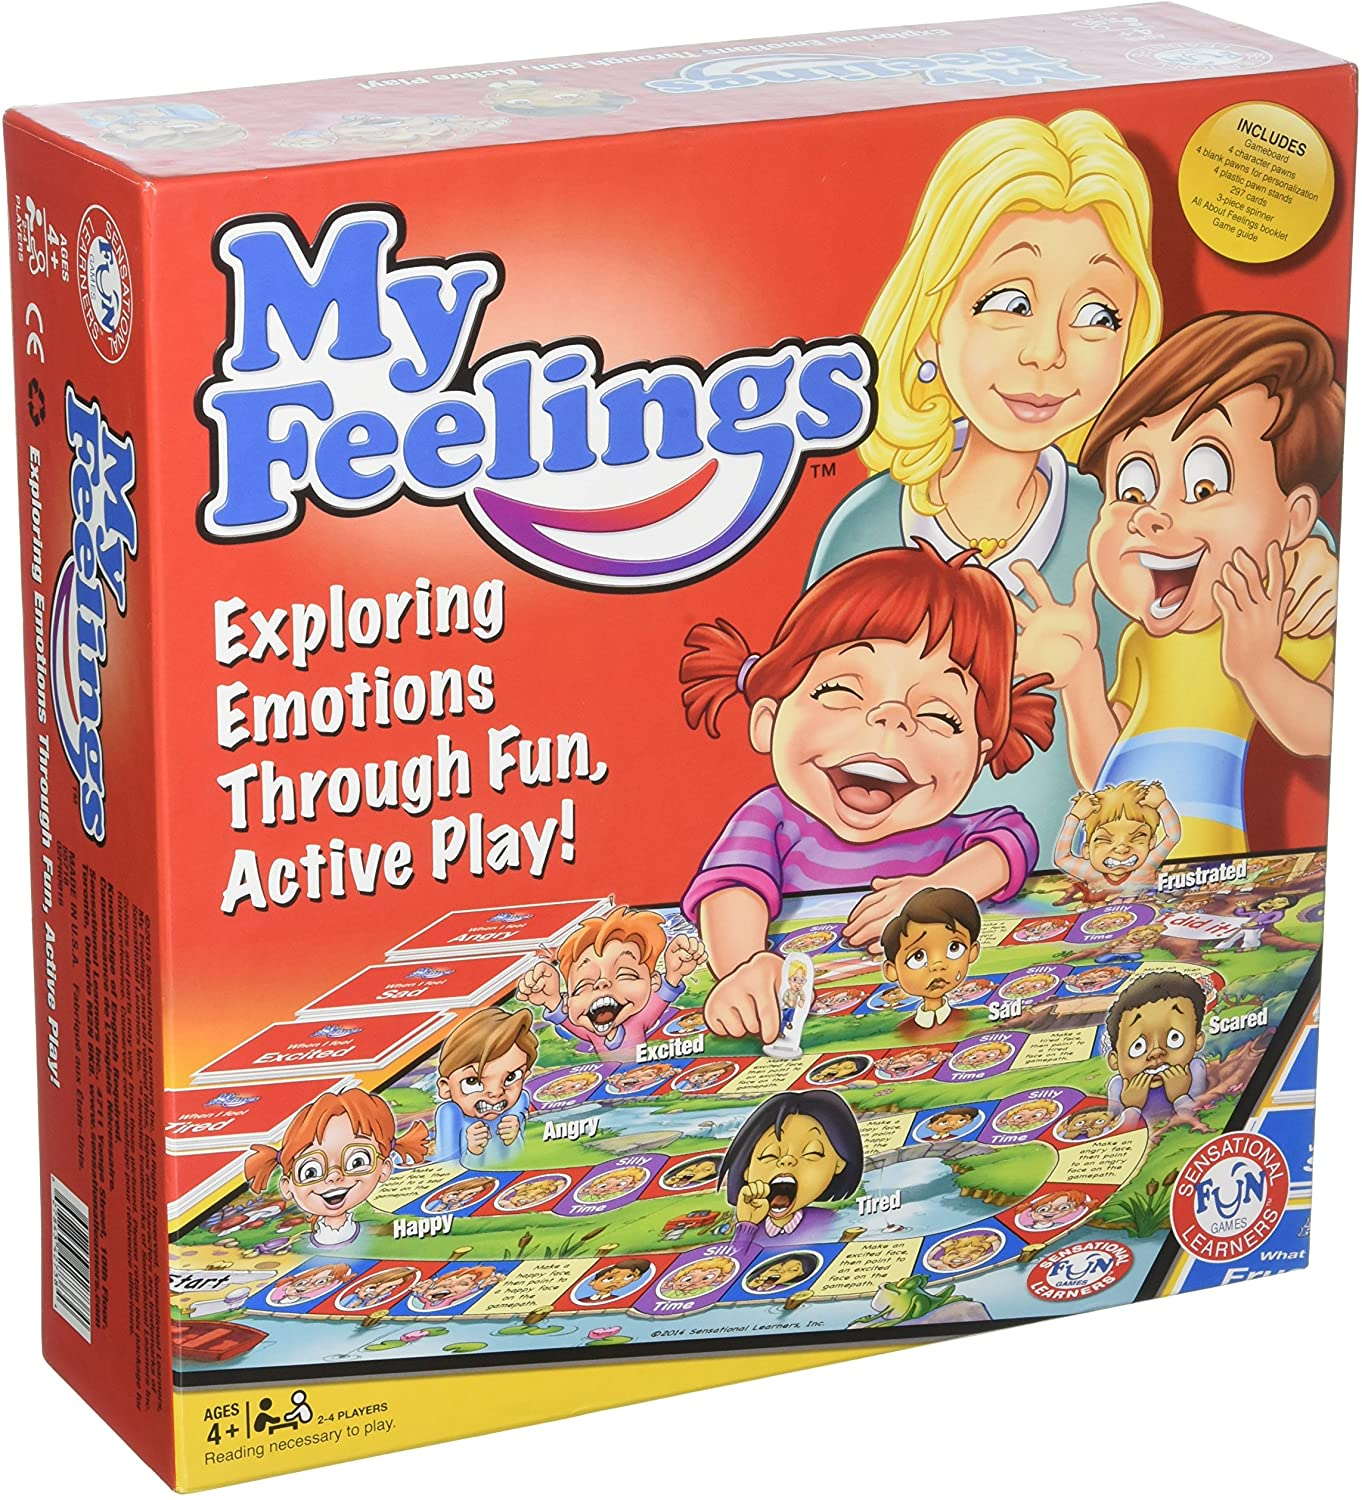 Games to Help Kids with Social and Emtional Issues